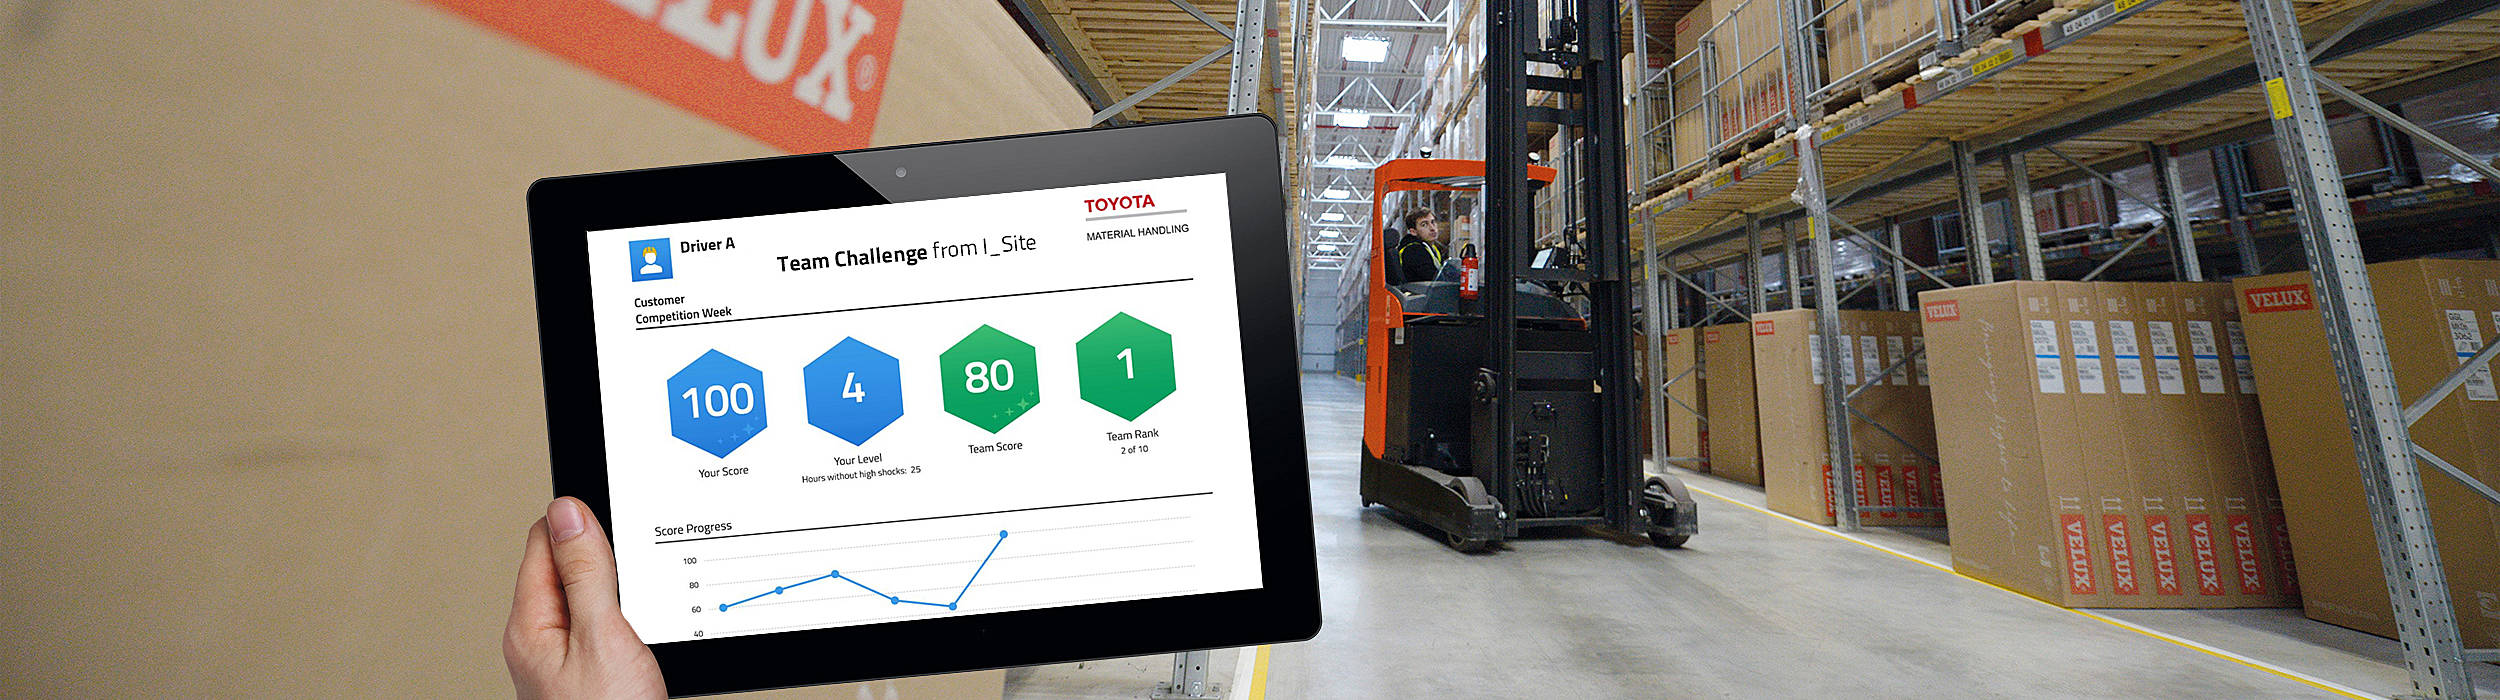 velux central warehouse thanks to toyota